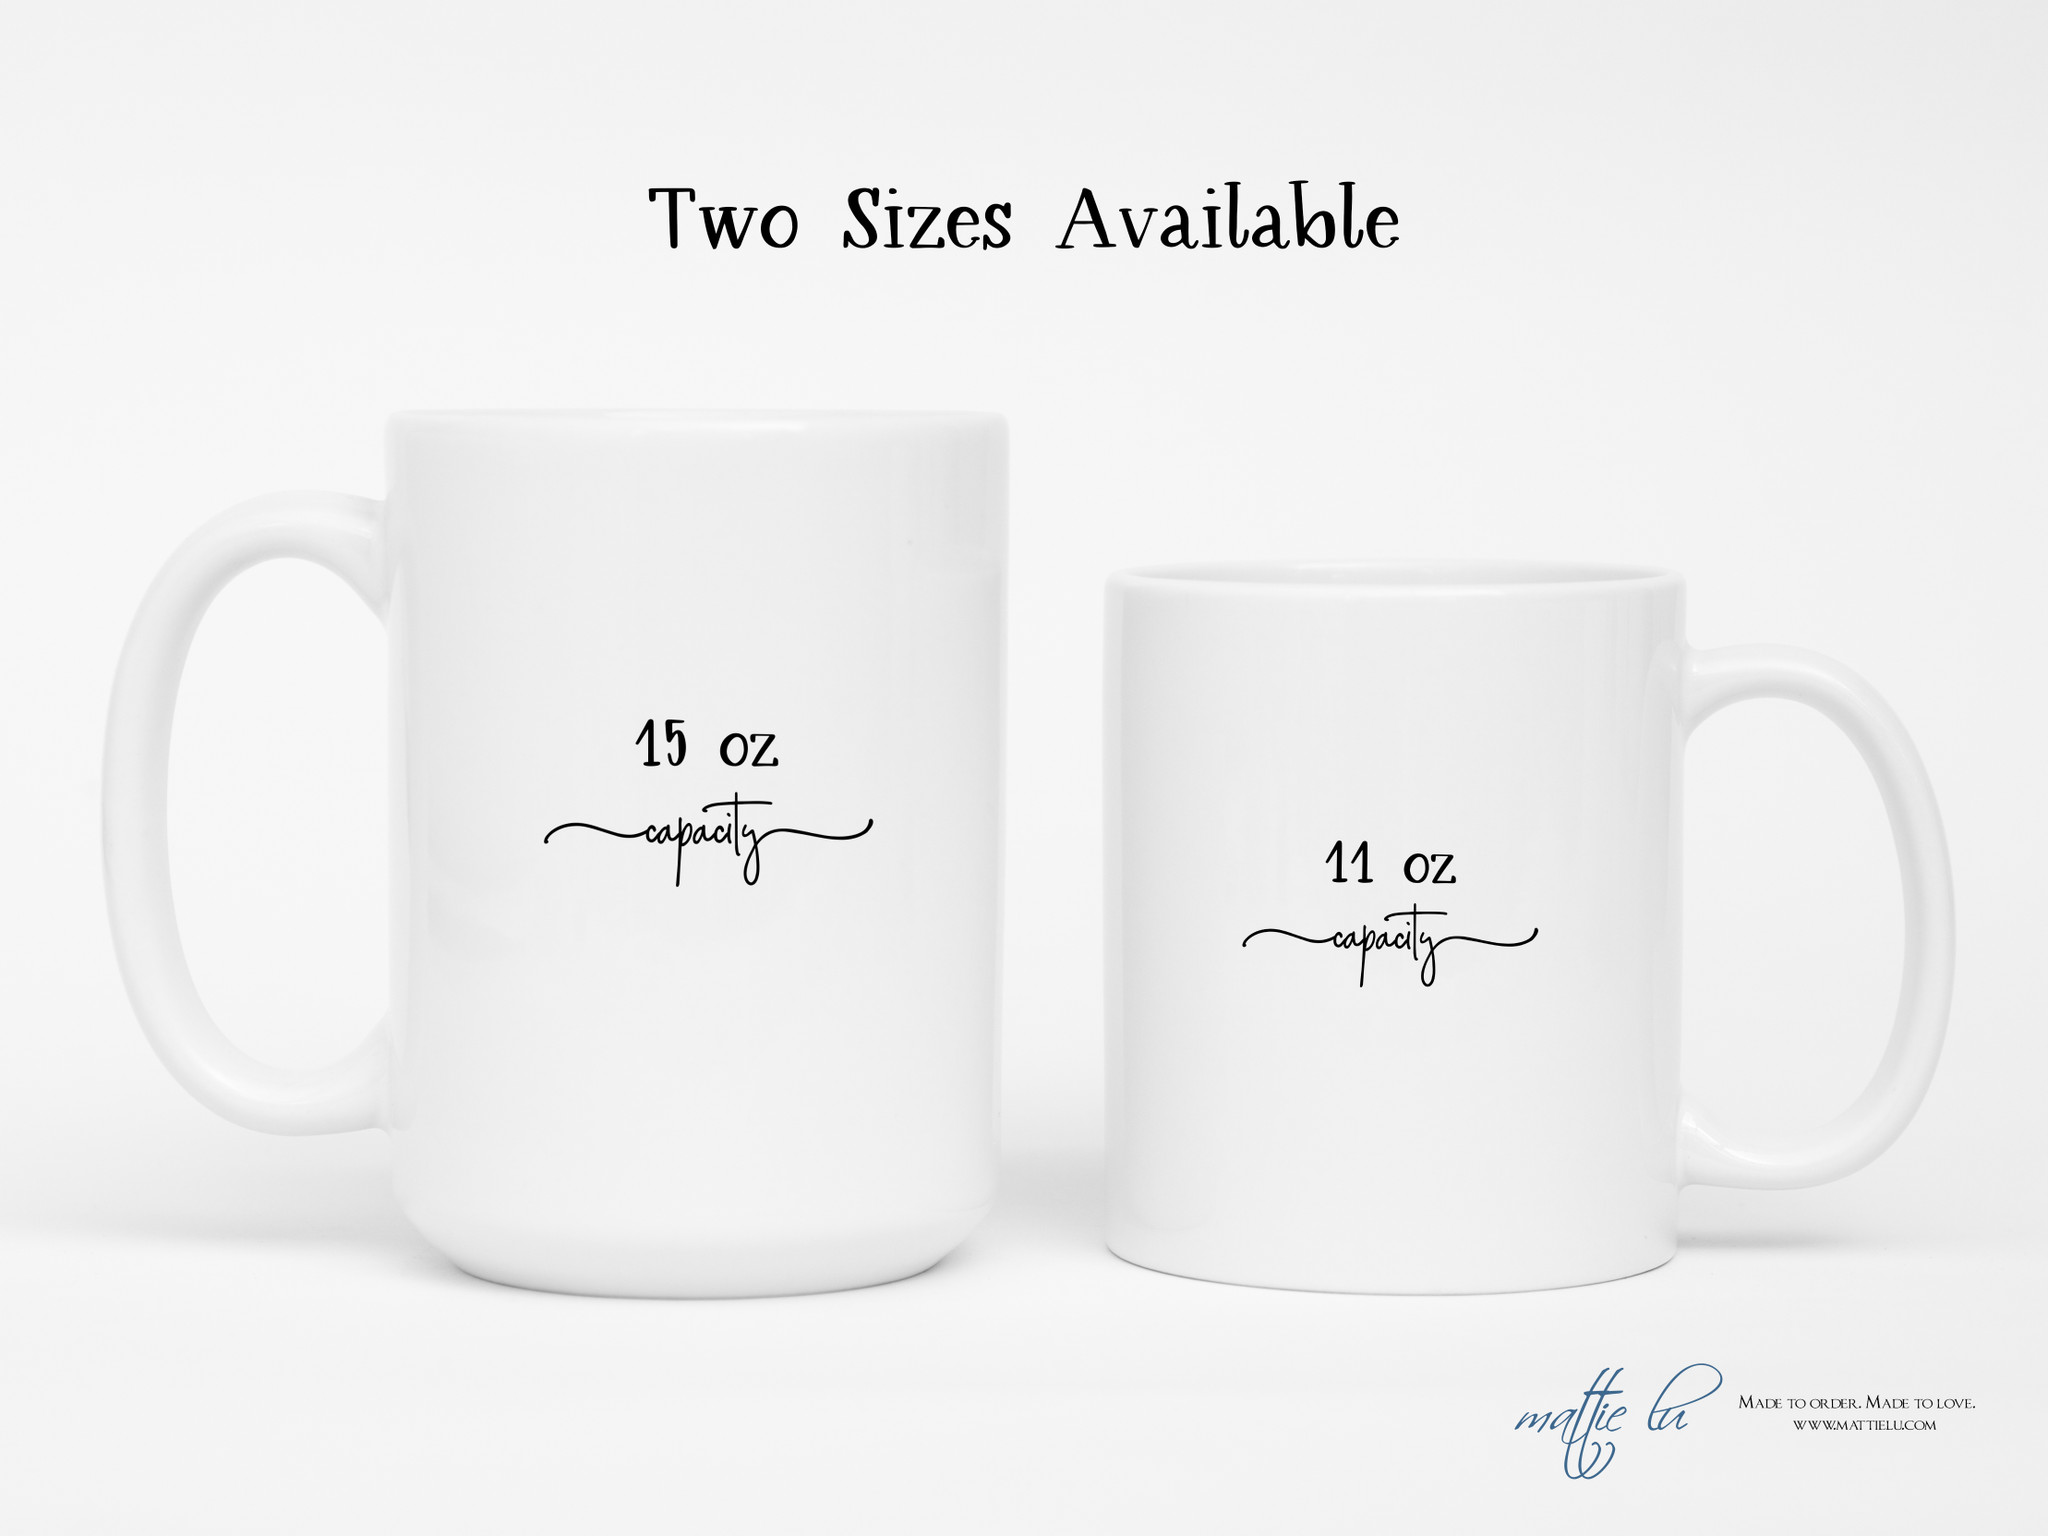 I D Smoke That Grilling Gifts For Men Mug For Dad Coffee Mugs With Sayings Novelty Mugs Personalized Mugs Gift Idea For Him Mattie Lu